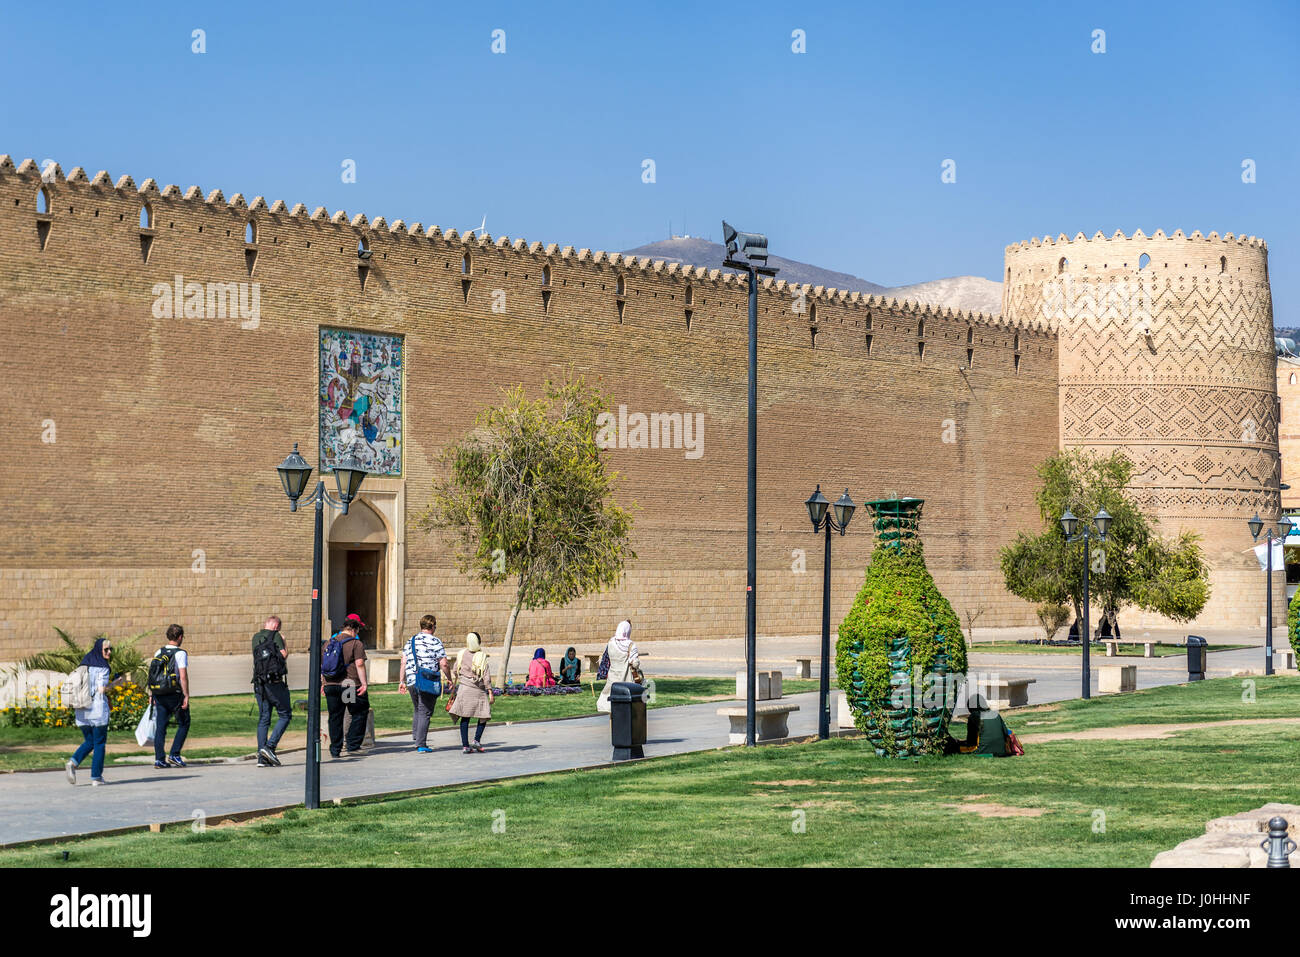 Walls of Castle of Karim Khan citadel (Arg-e Karim Khan) build during Zand dynasty in Shiraz city, capital of Fars - Stock Image